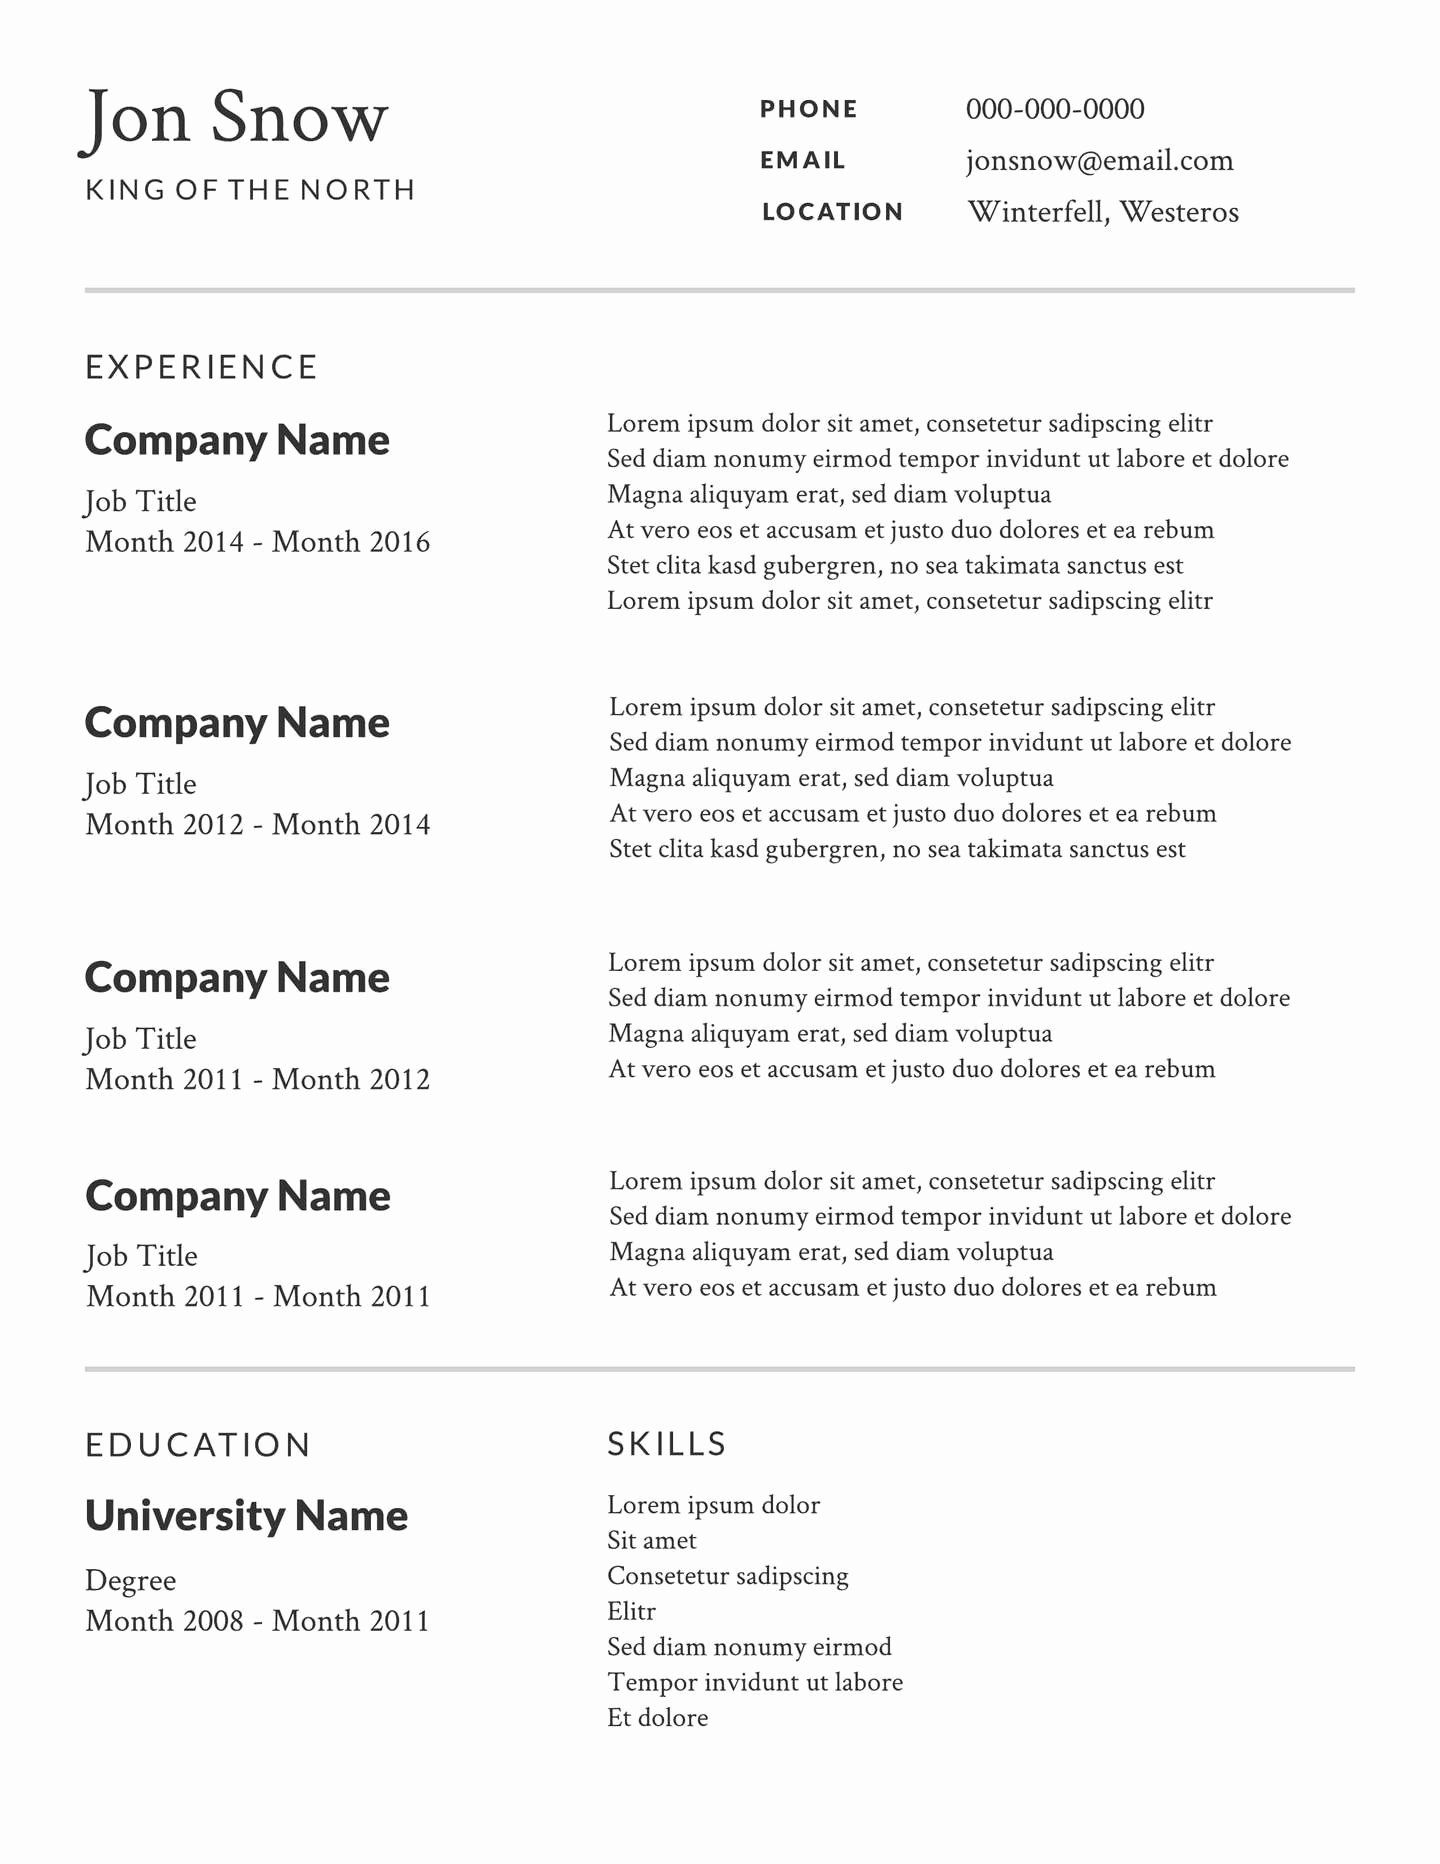 Professional Resume Template Free Fresh Free Simple or